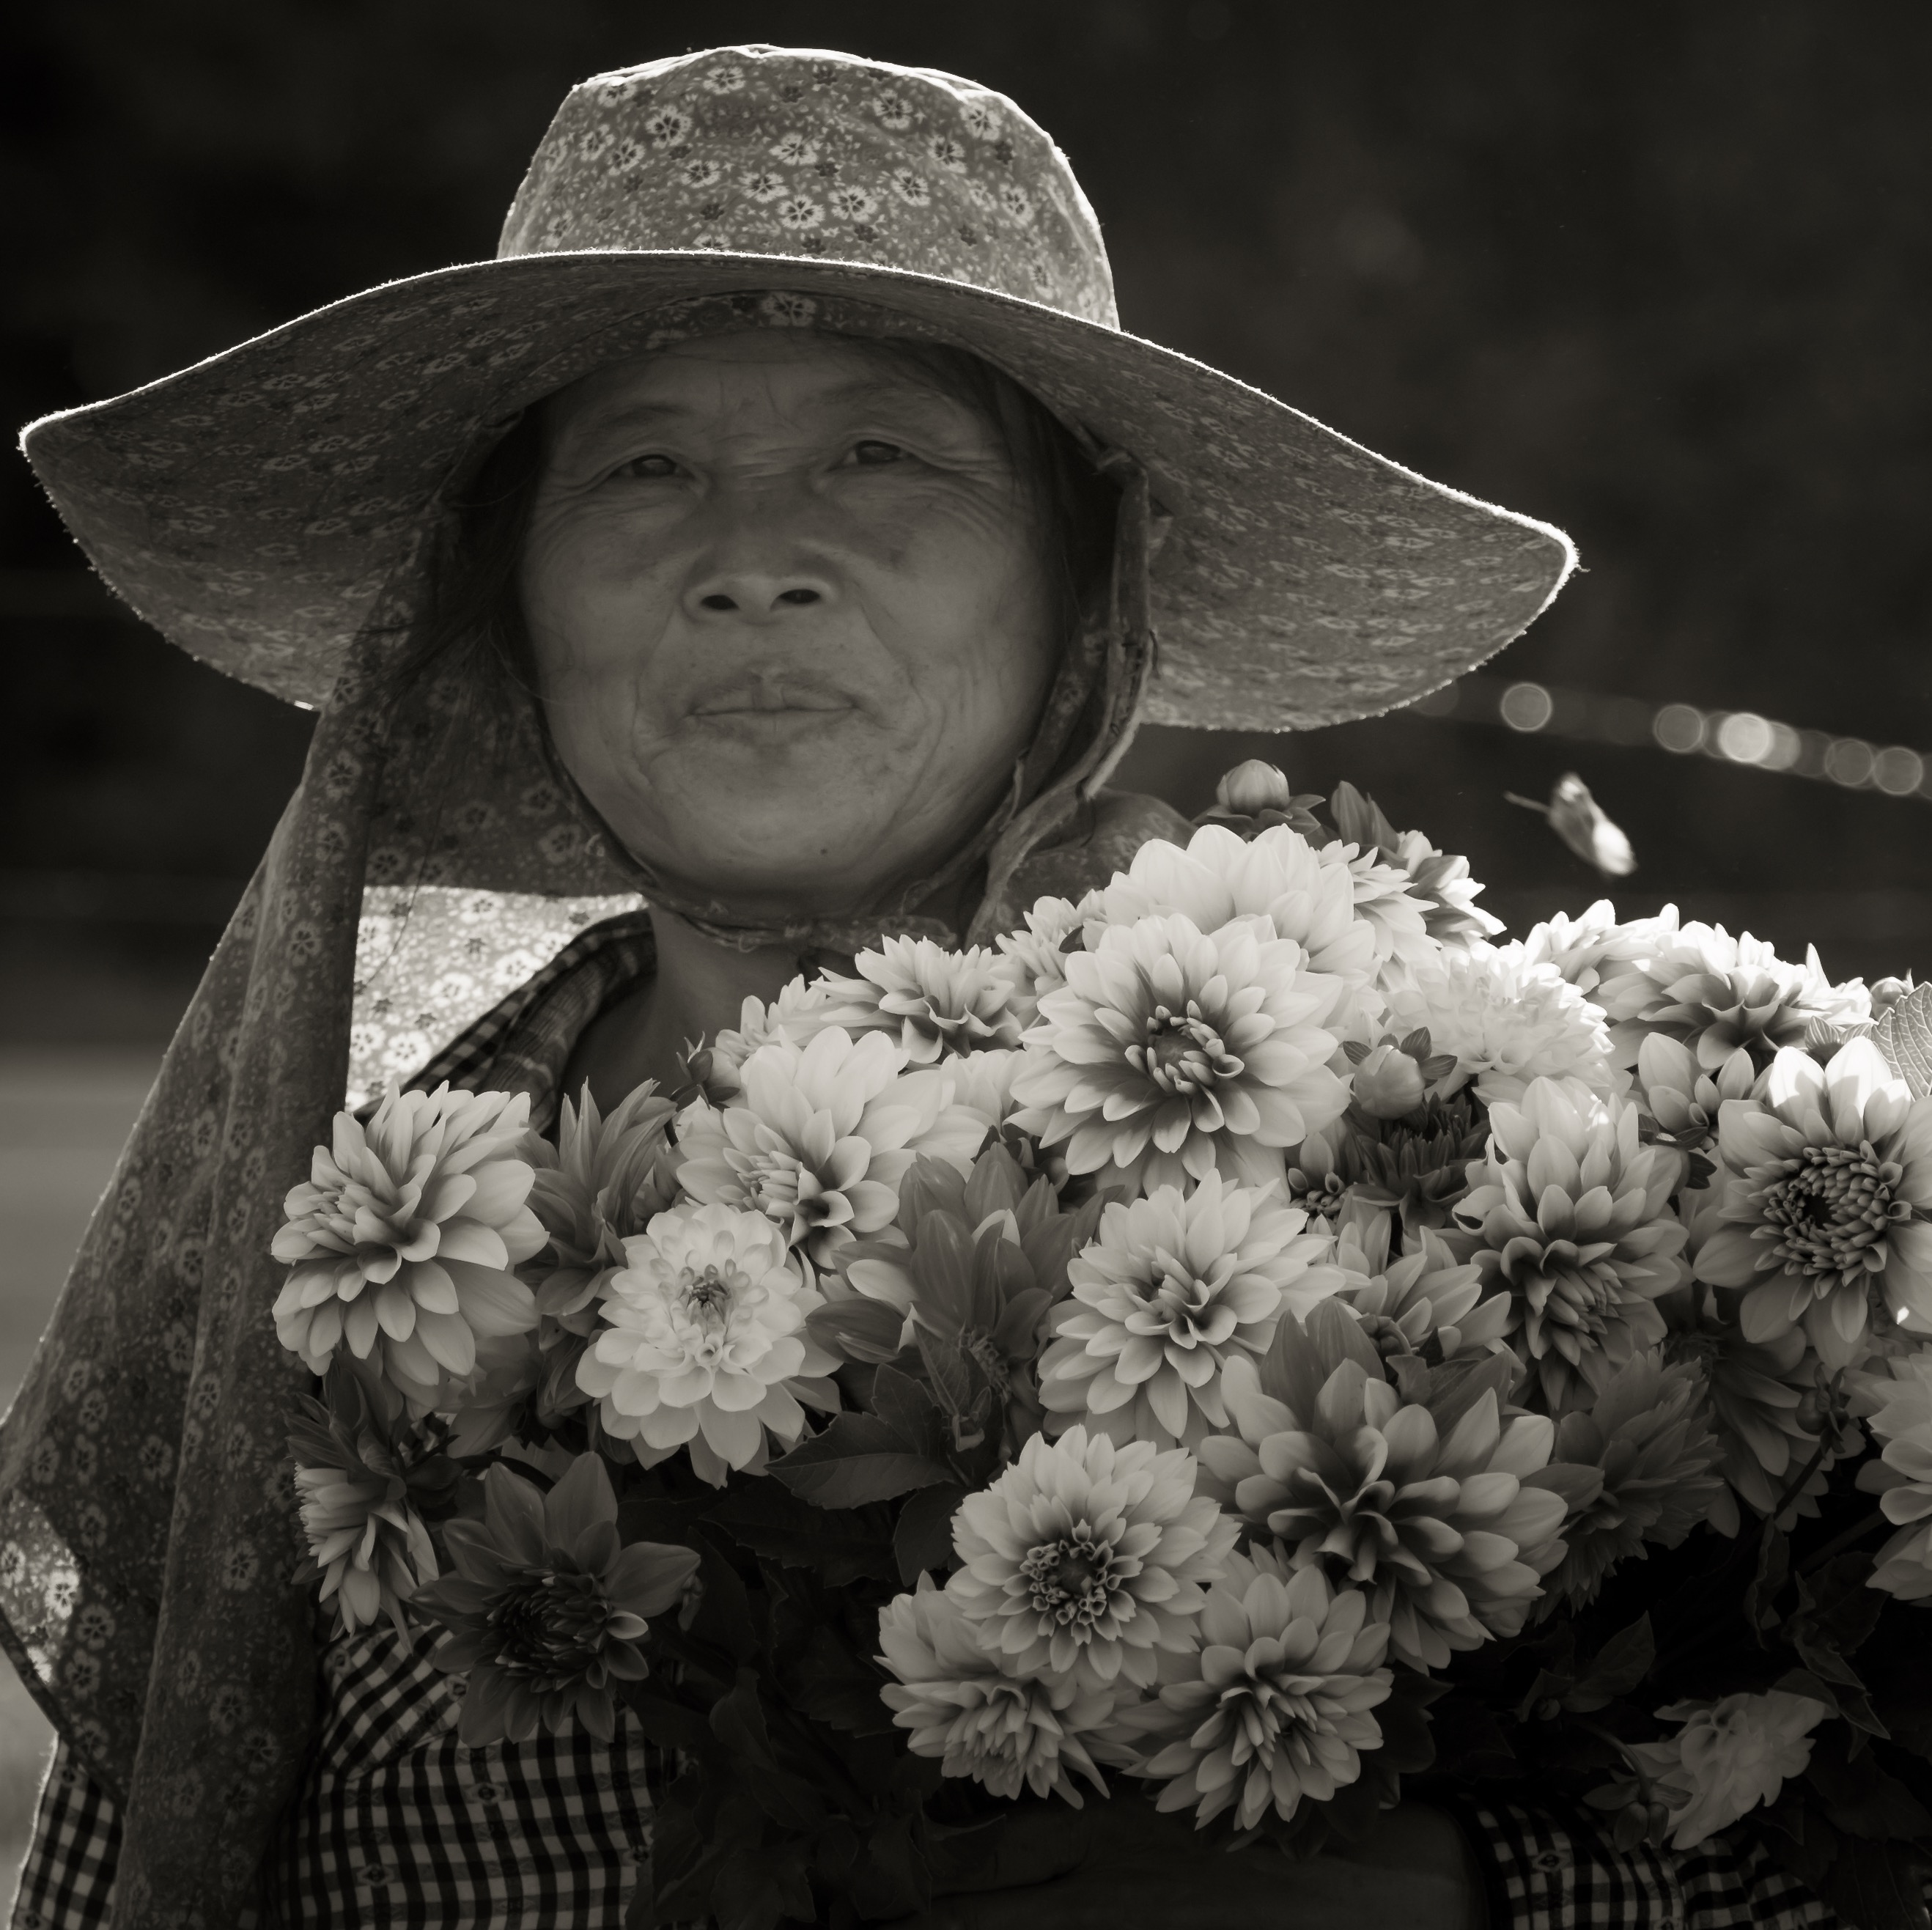 ef610e87ed8 https   www.smithsonianmag.com photocontest detail people the ...